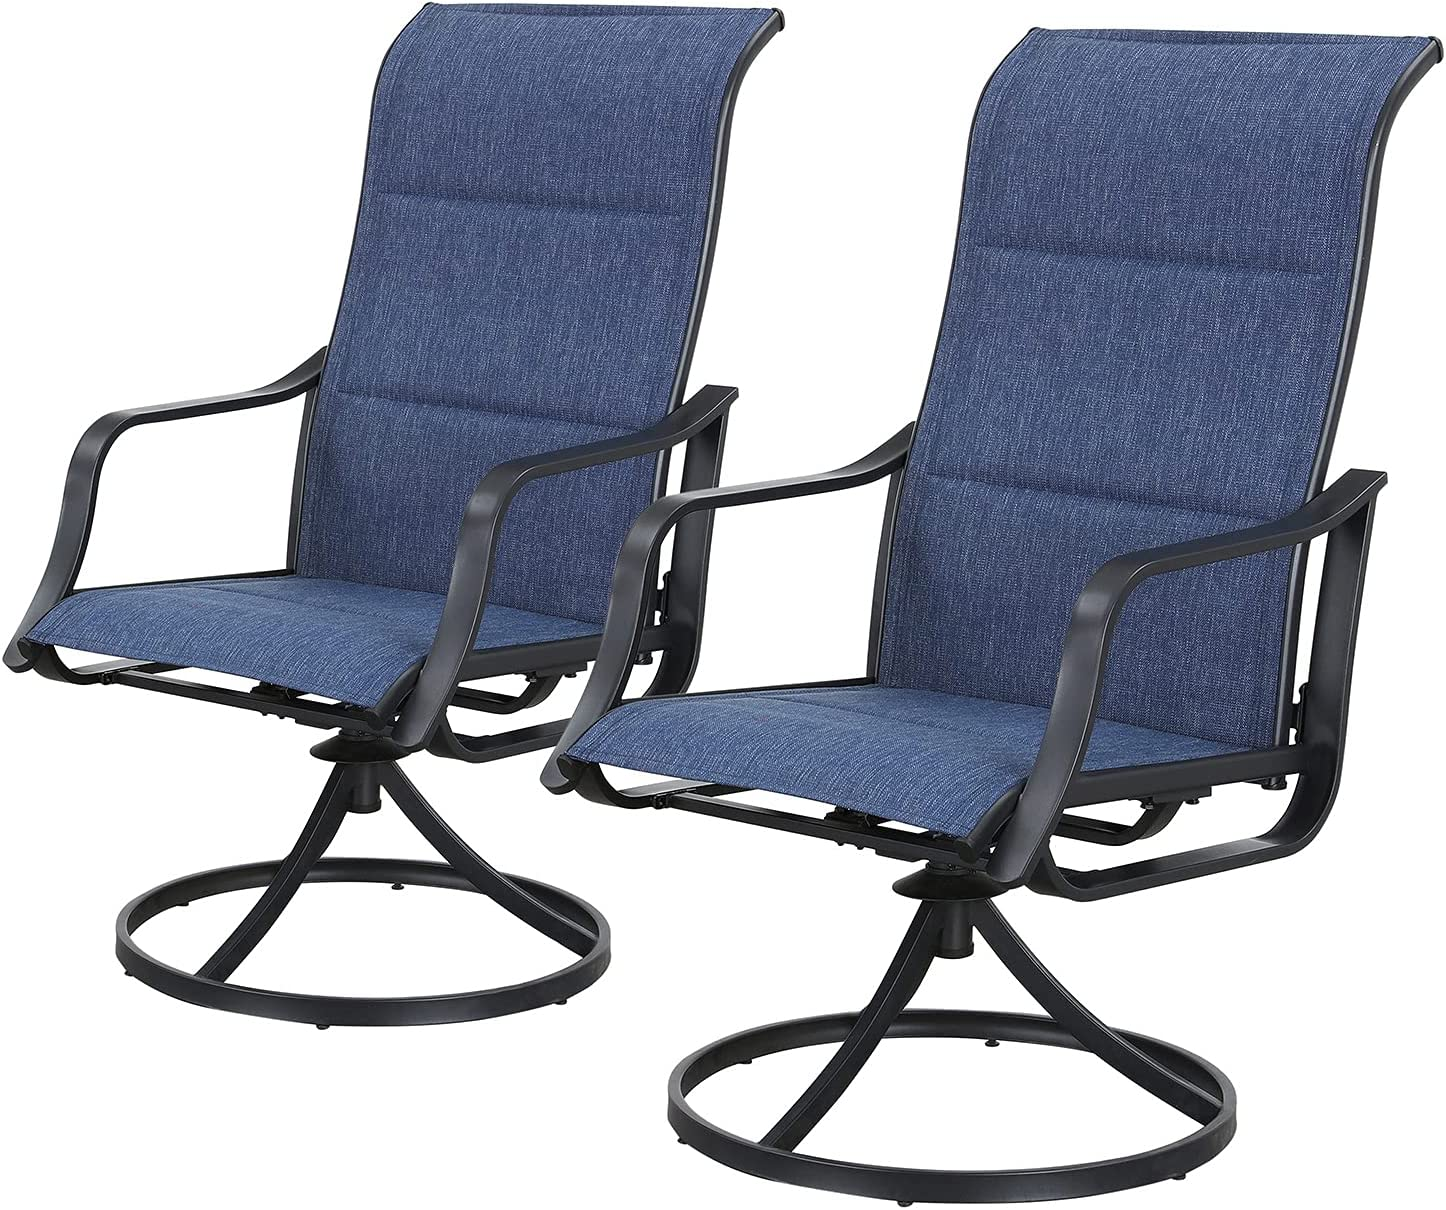 We OFFer at cheap prices Top Space Patio Dining Chairs Sale 2 Rock Outdoor Metal Pieces Swivel